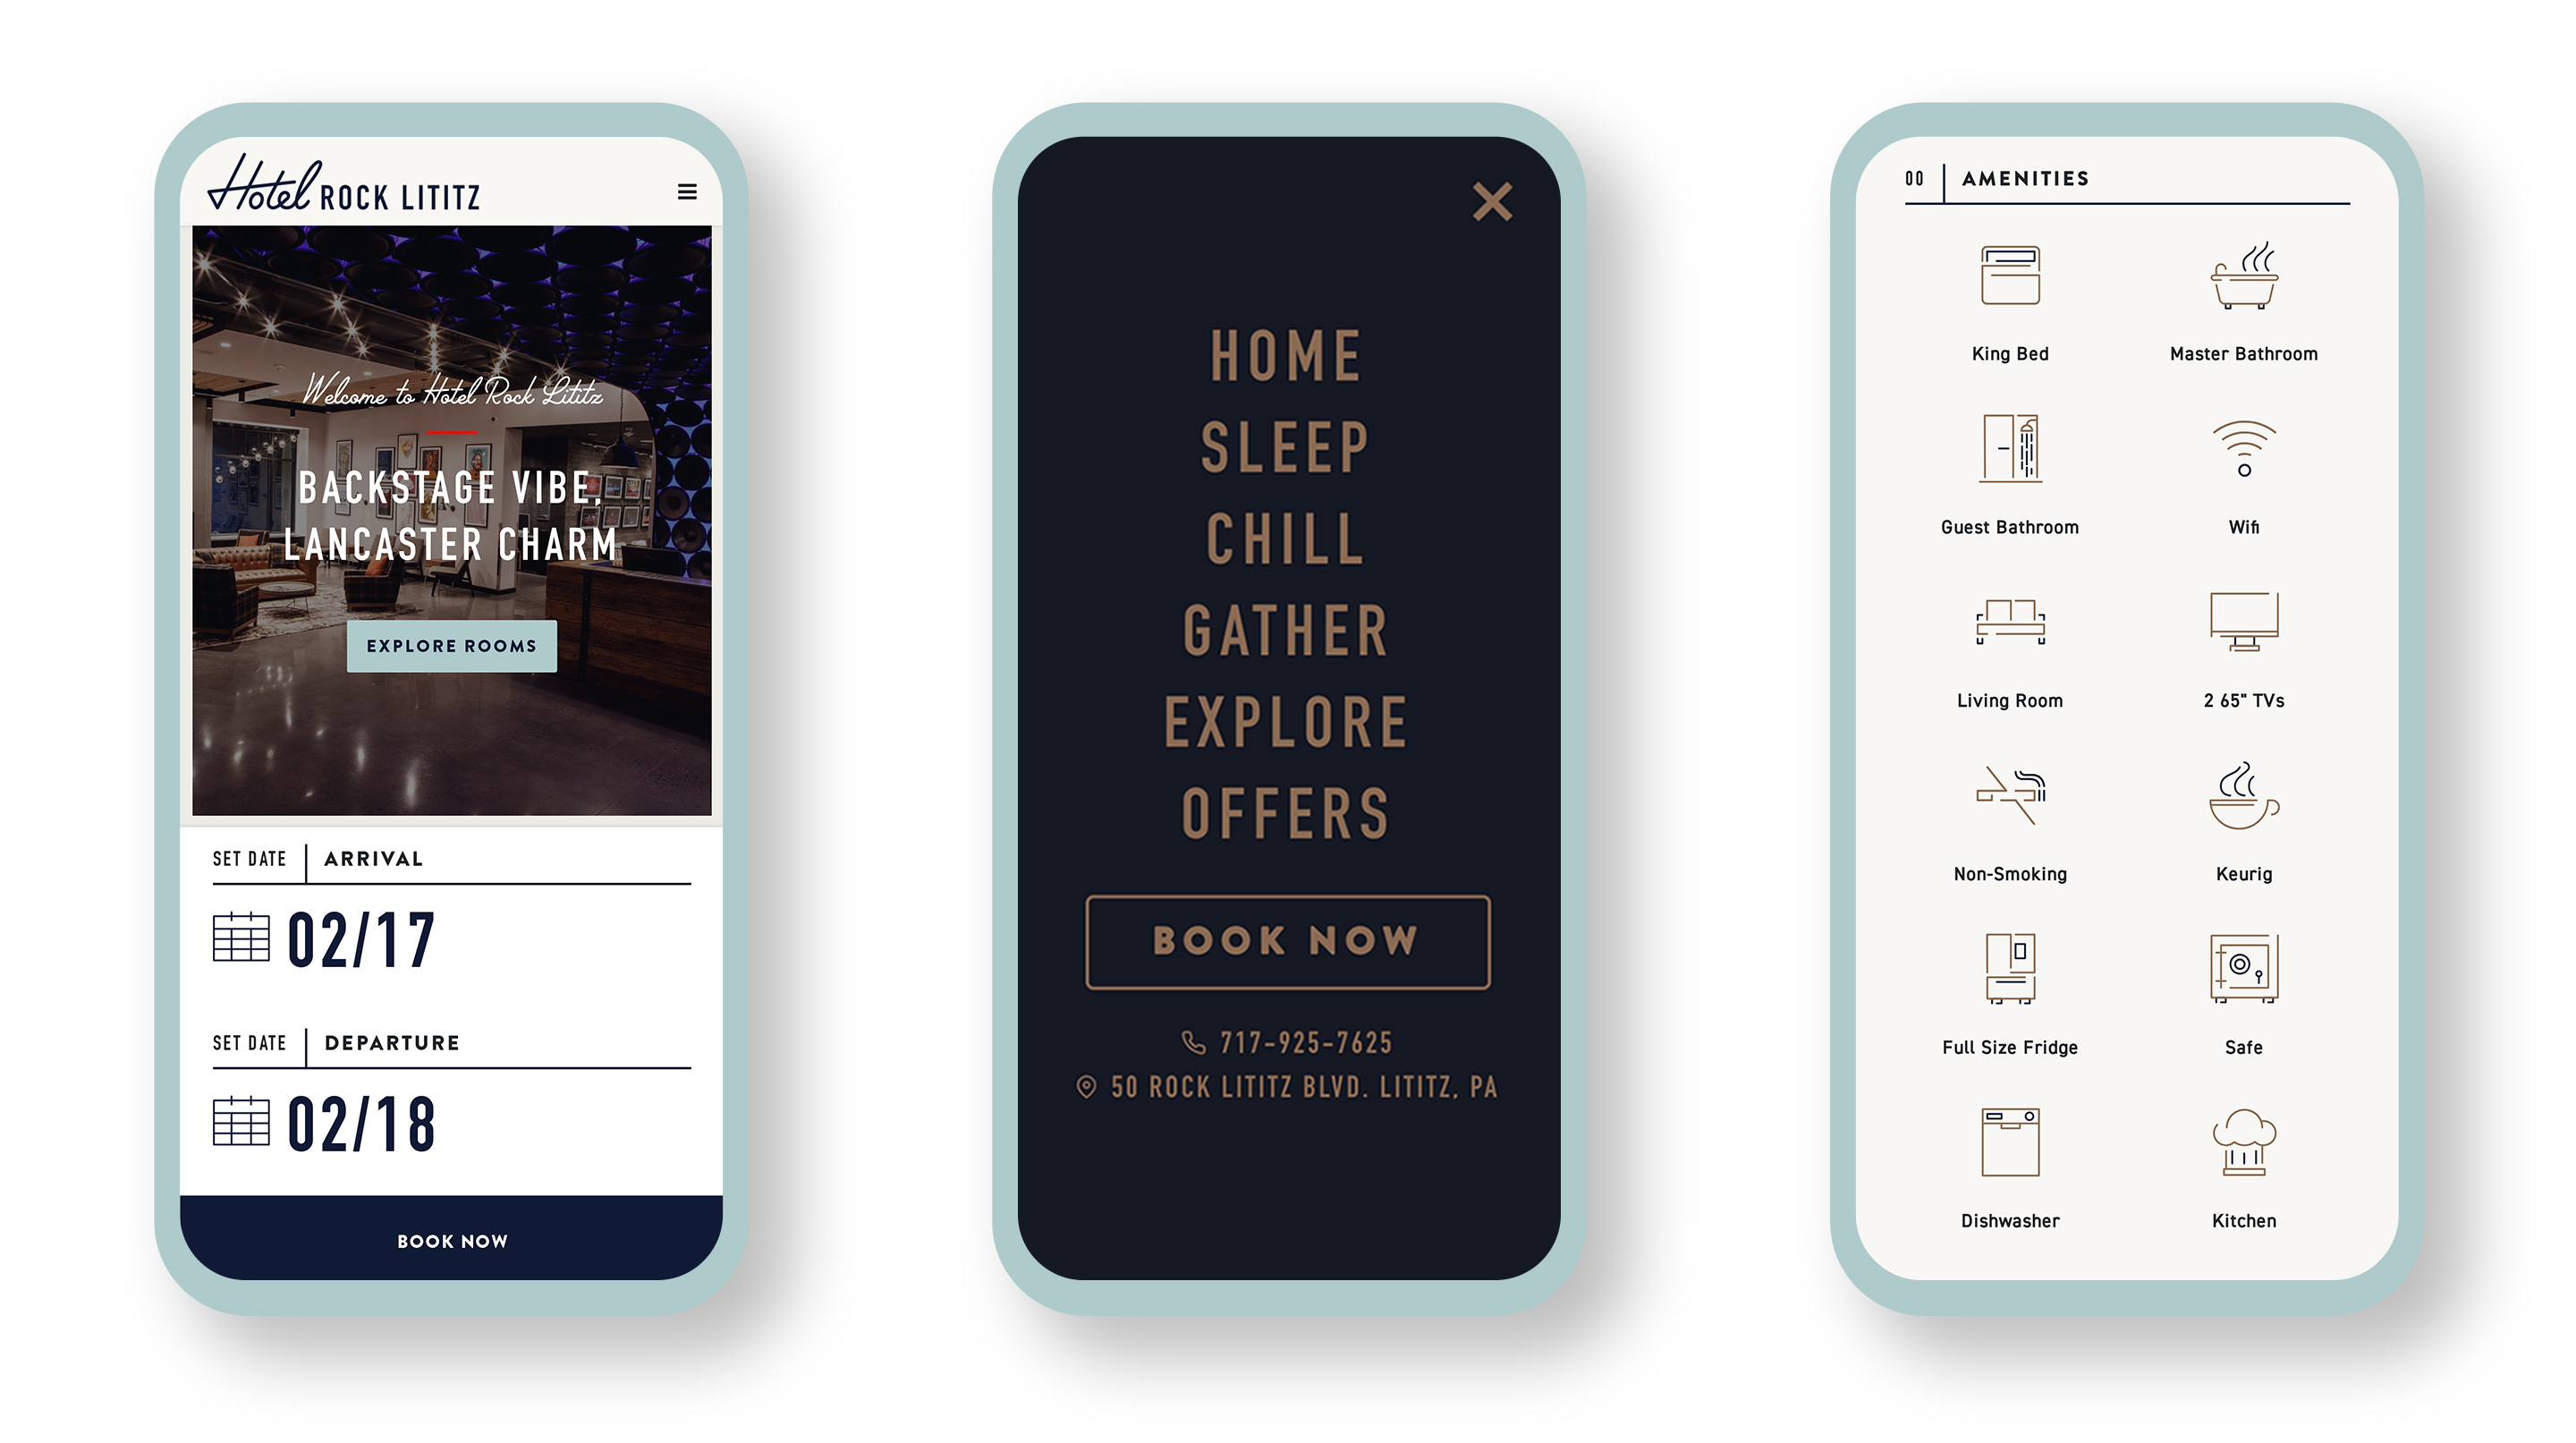 Hotel Rock Lititz website mocked up on 3 mobile devices